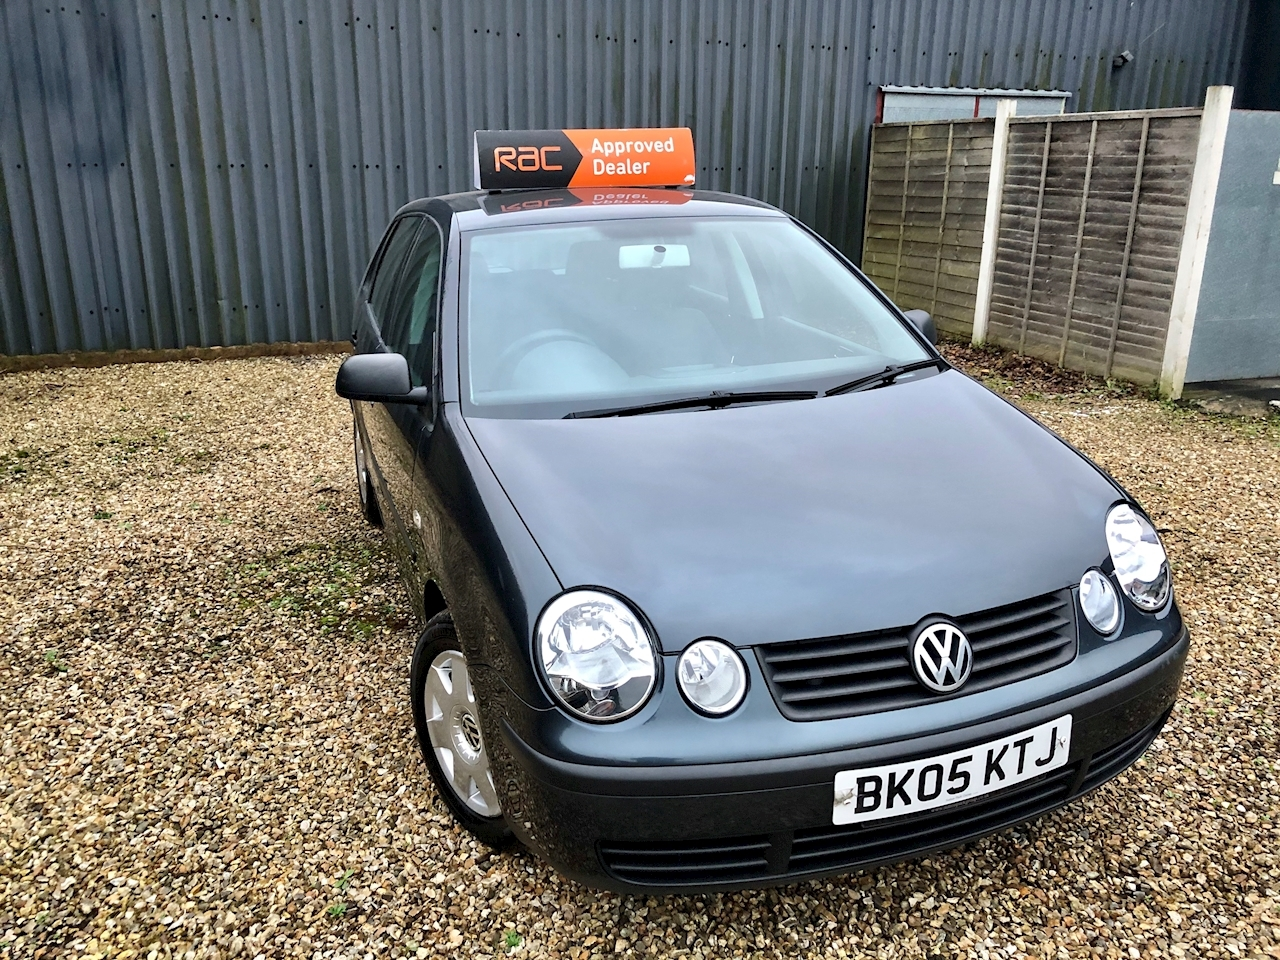 Volkswagen Polo Twist 1.2 5dr Hatchback Manual Petrol